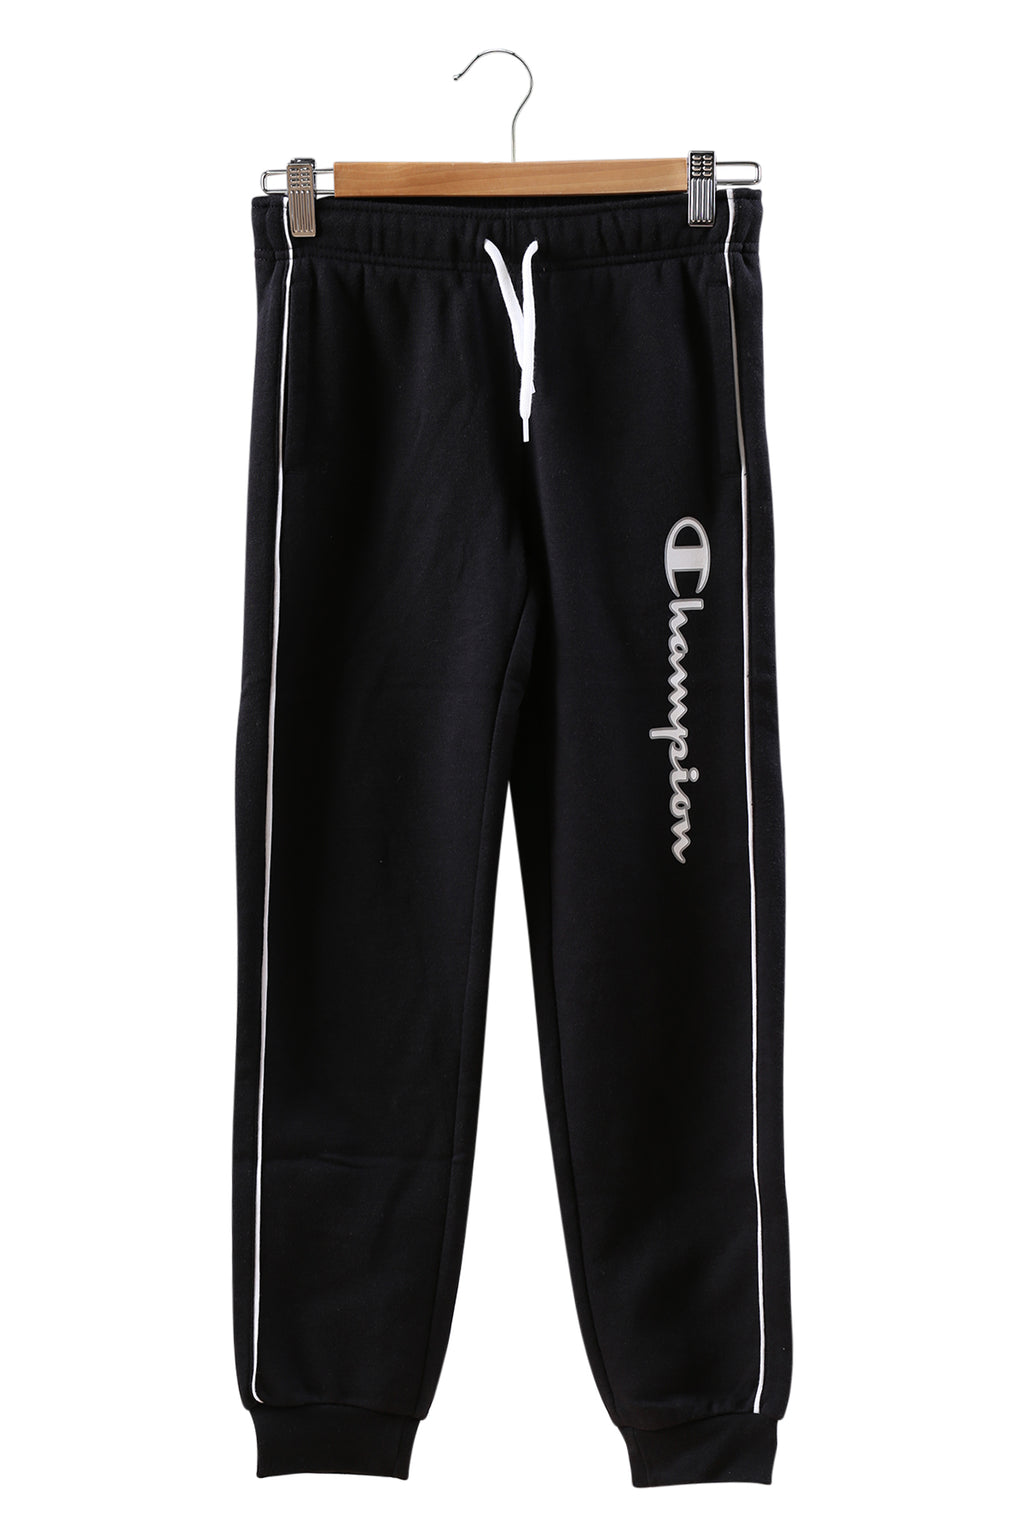 Champion EU Boys Script Pant Black/White